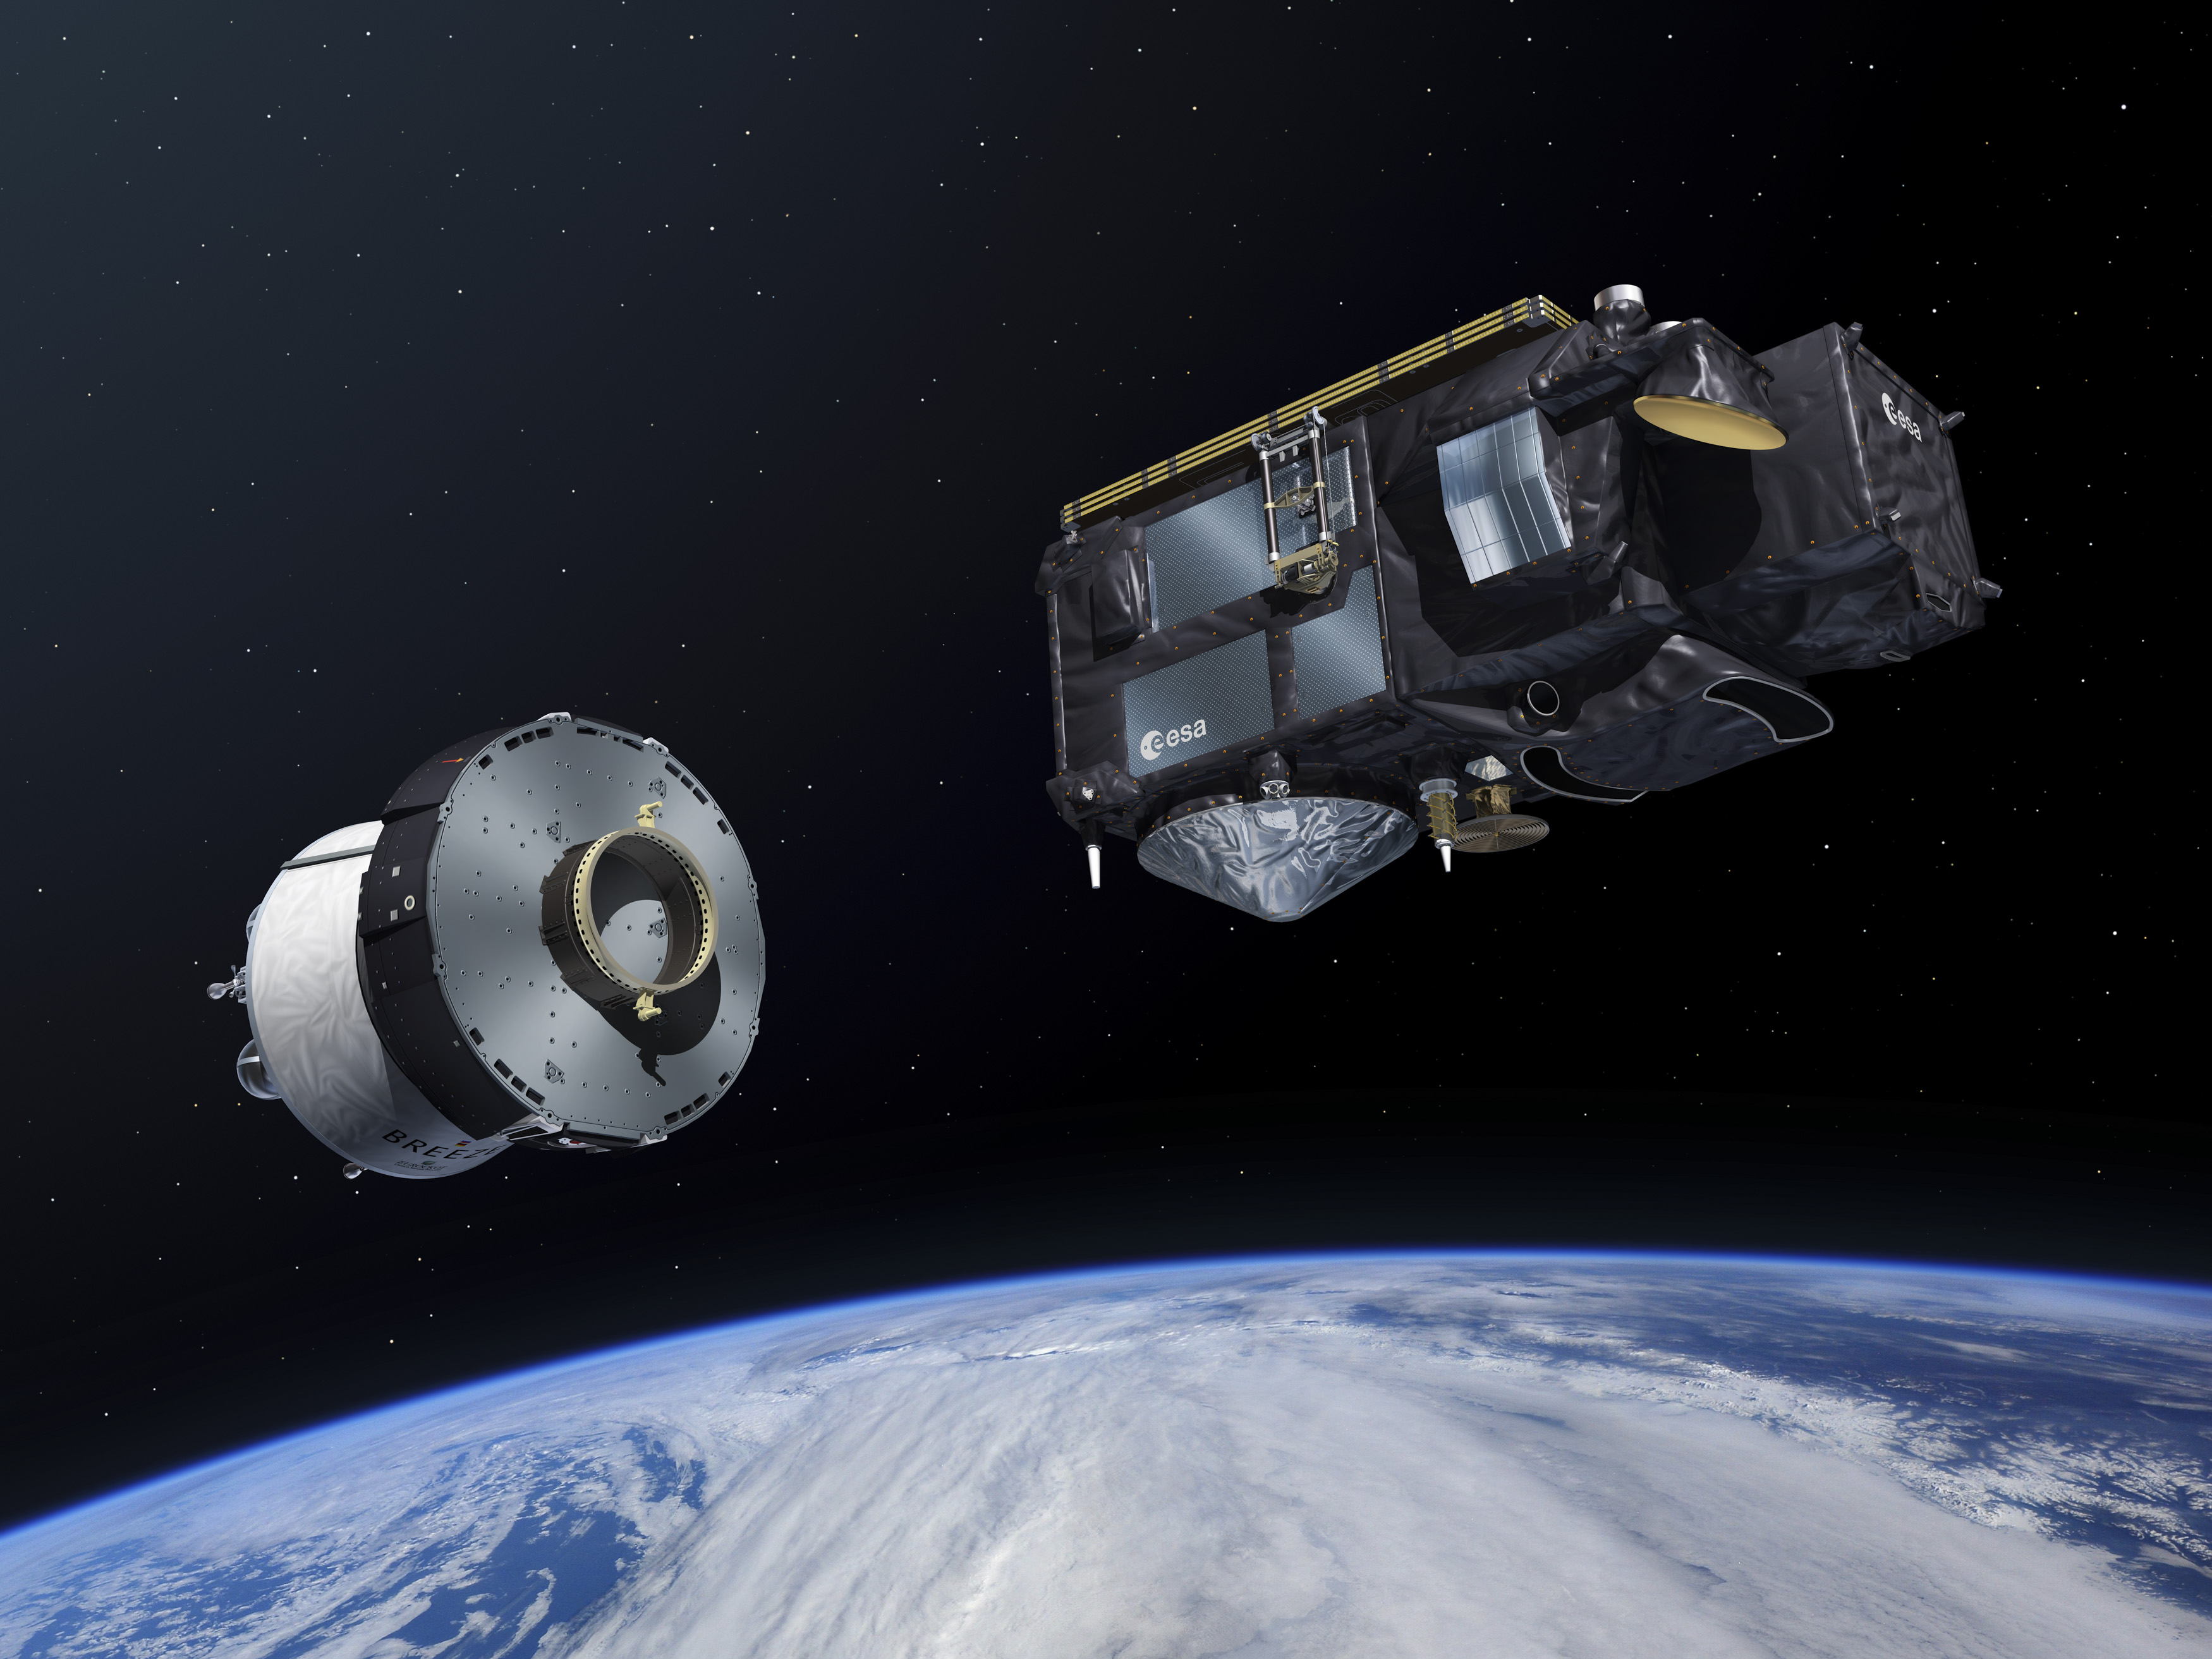 Sentinel-3B sseparating from Breeze Upper stage © ESA